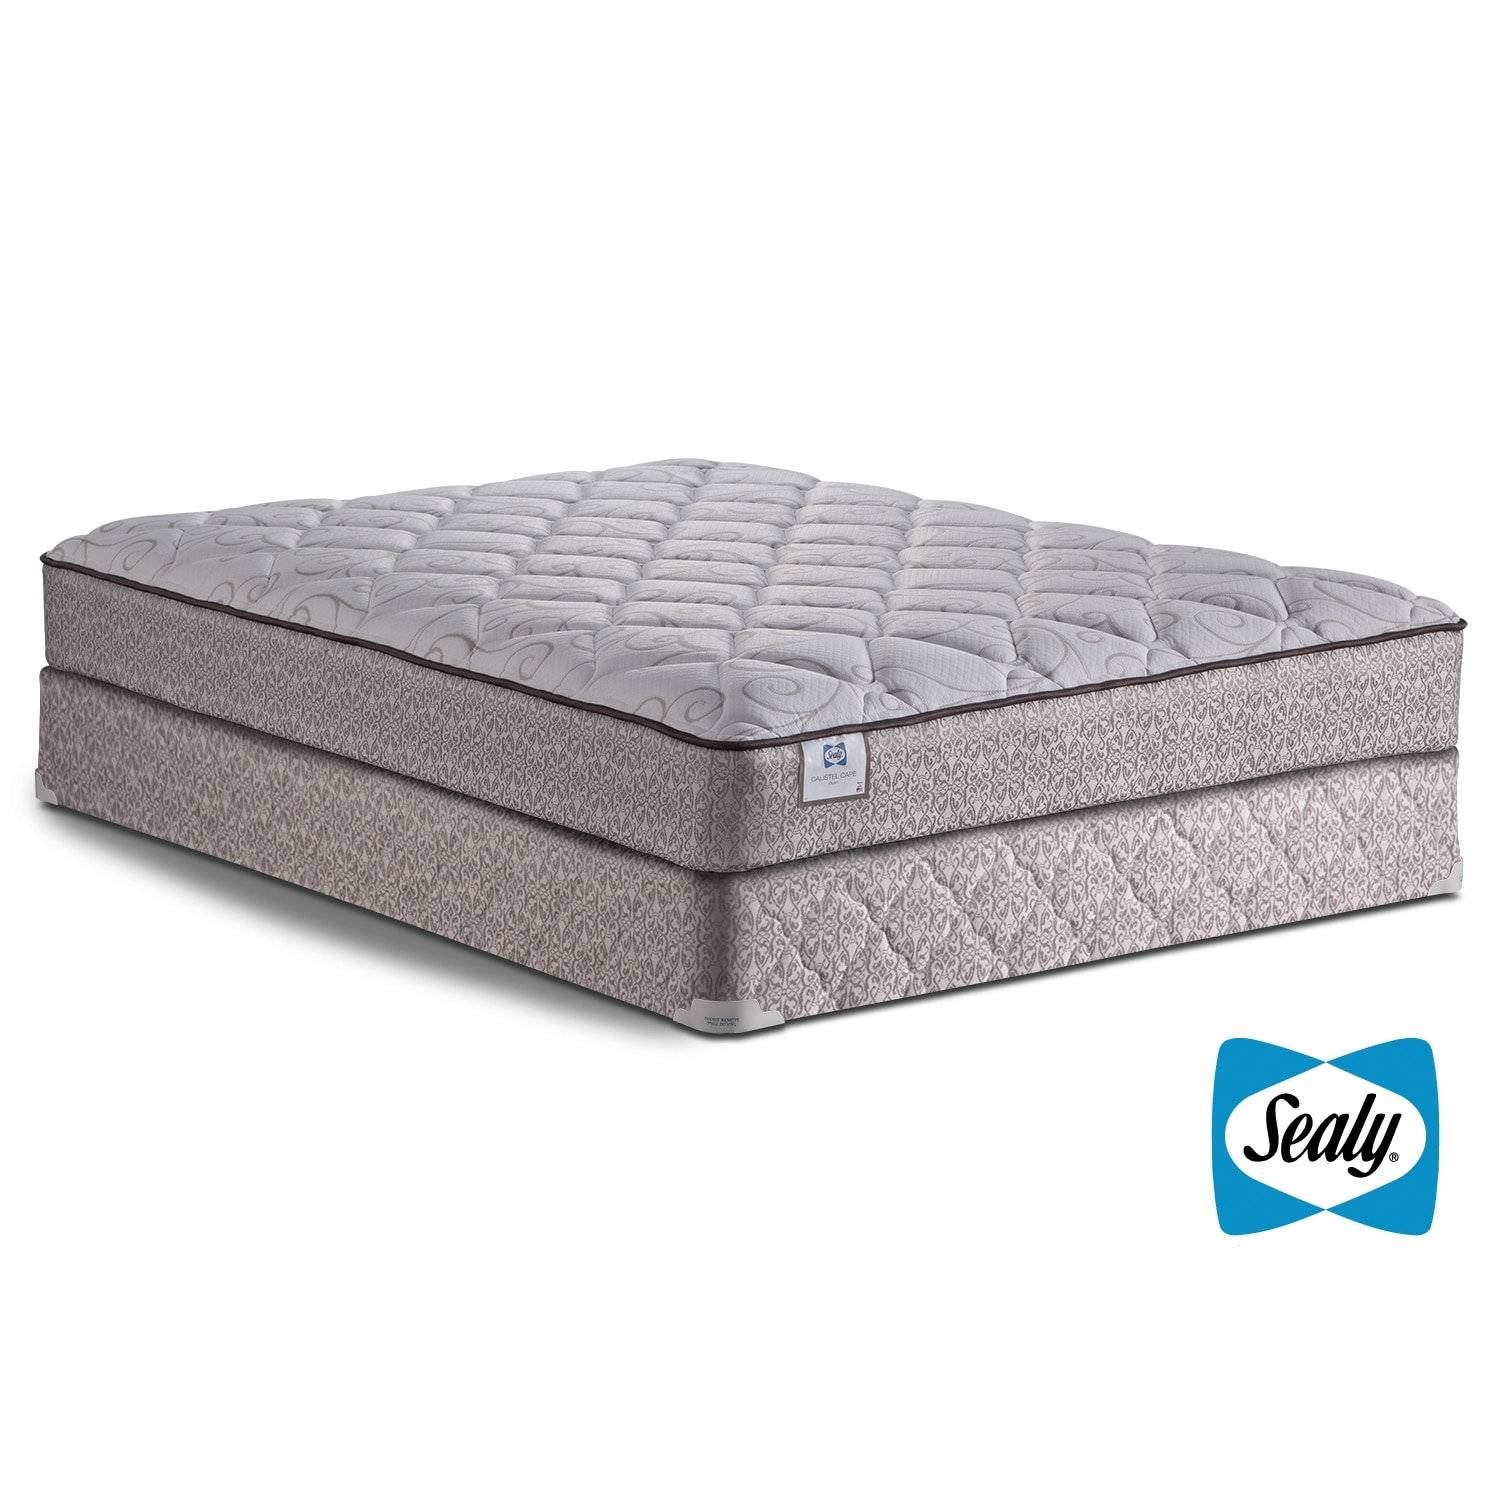 Mattresses and bedding renew queen mattressfoundation set bed mattress sale Mattress set sale queen